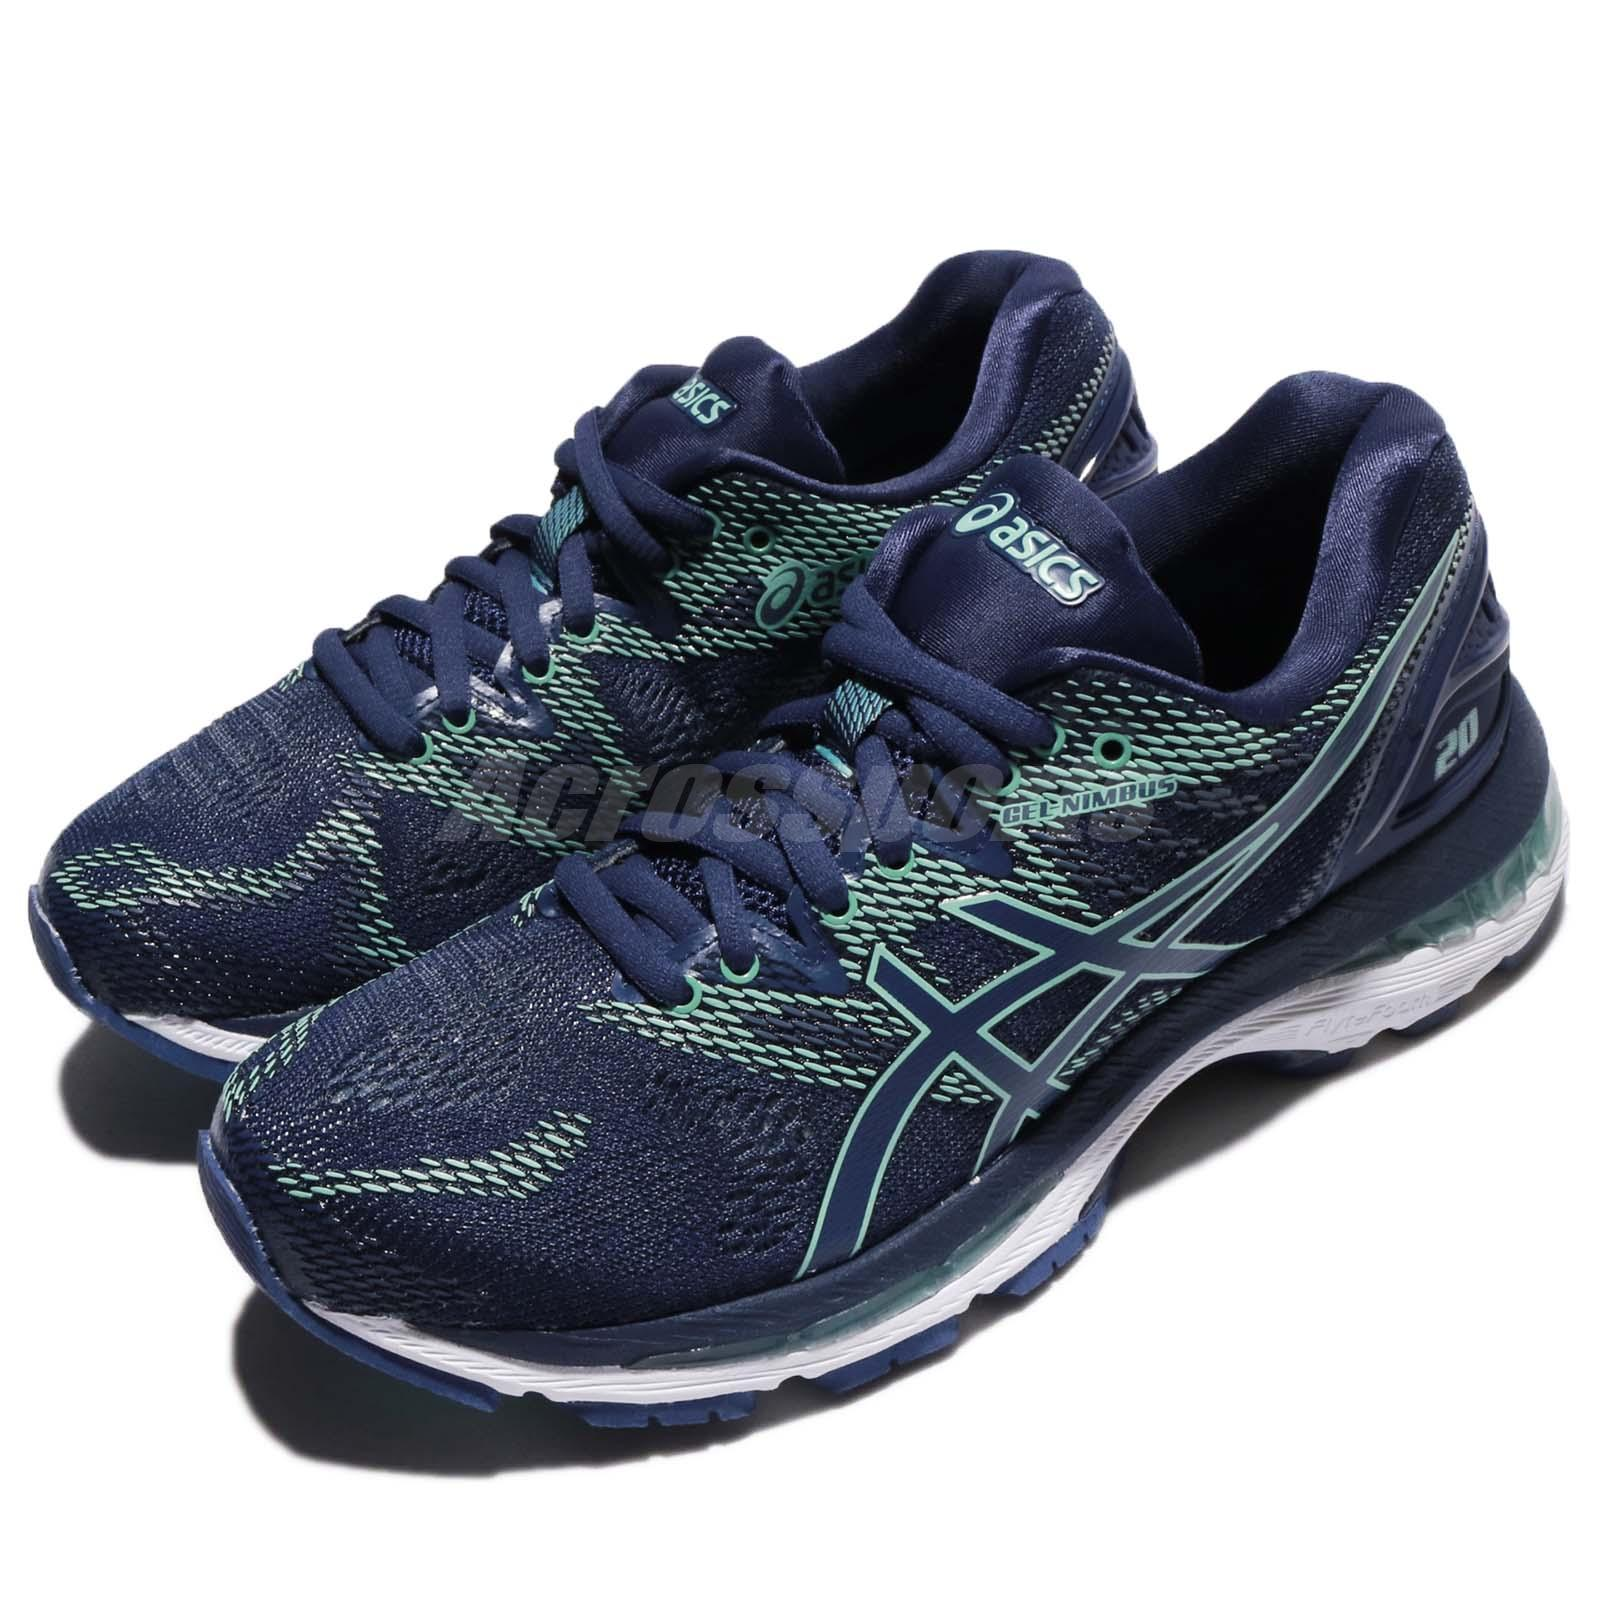 d2ebae31 Details about Asics Gel-Nimbus 20 Indigo Blue White Women Road Running Shoe  Sneaker T850N-4949